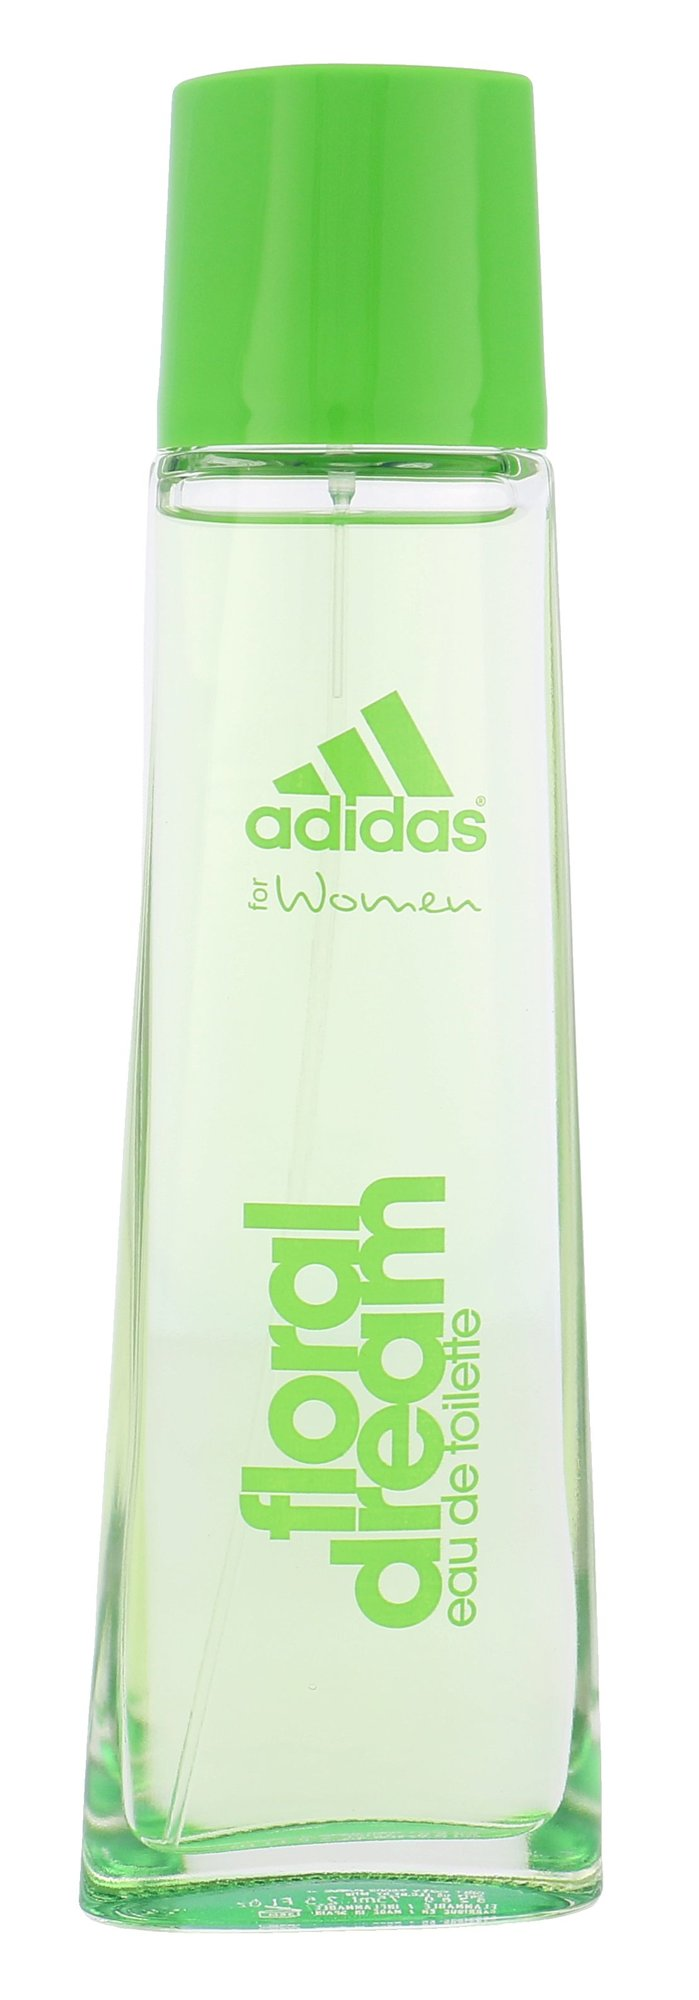 Adidas Floral Dream For Women EDT 75ml